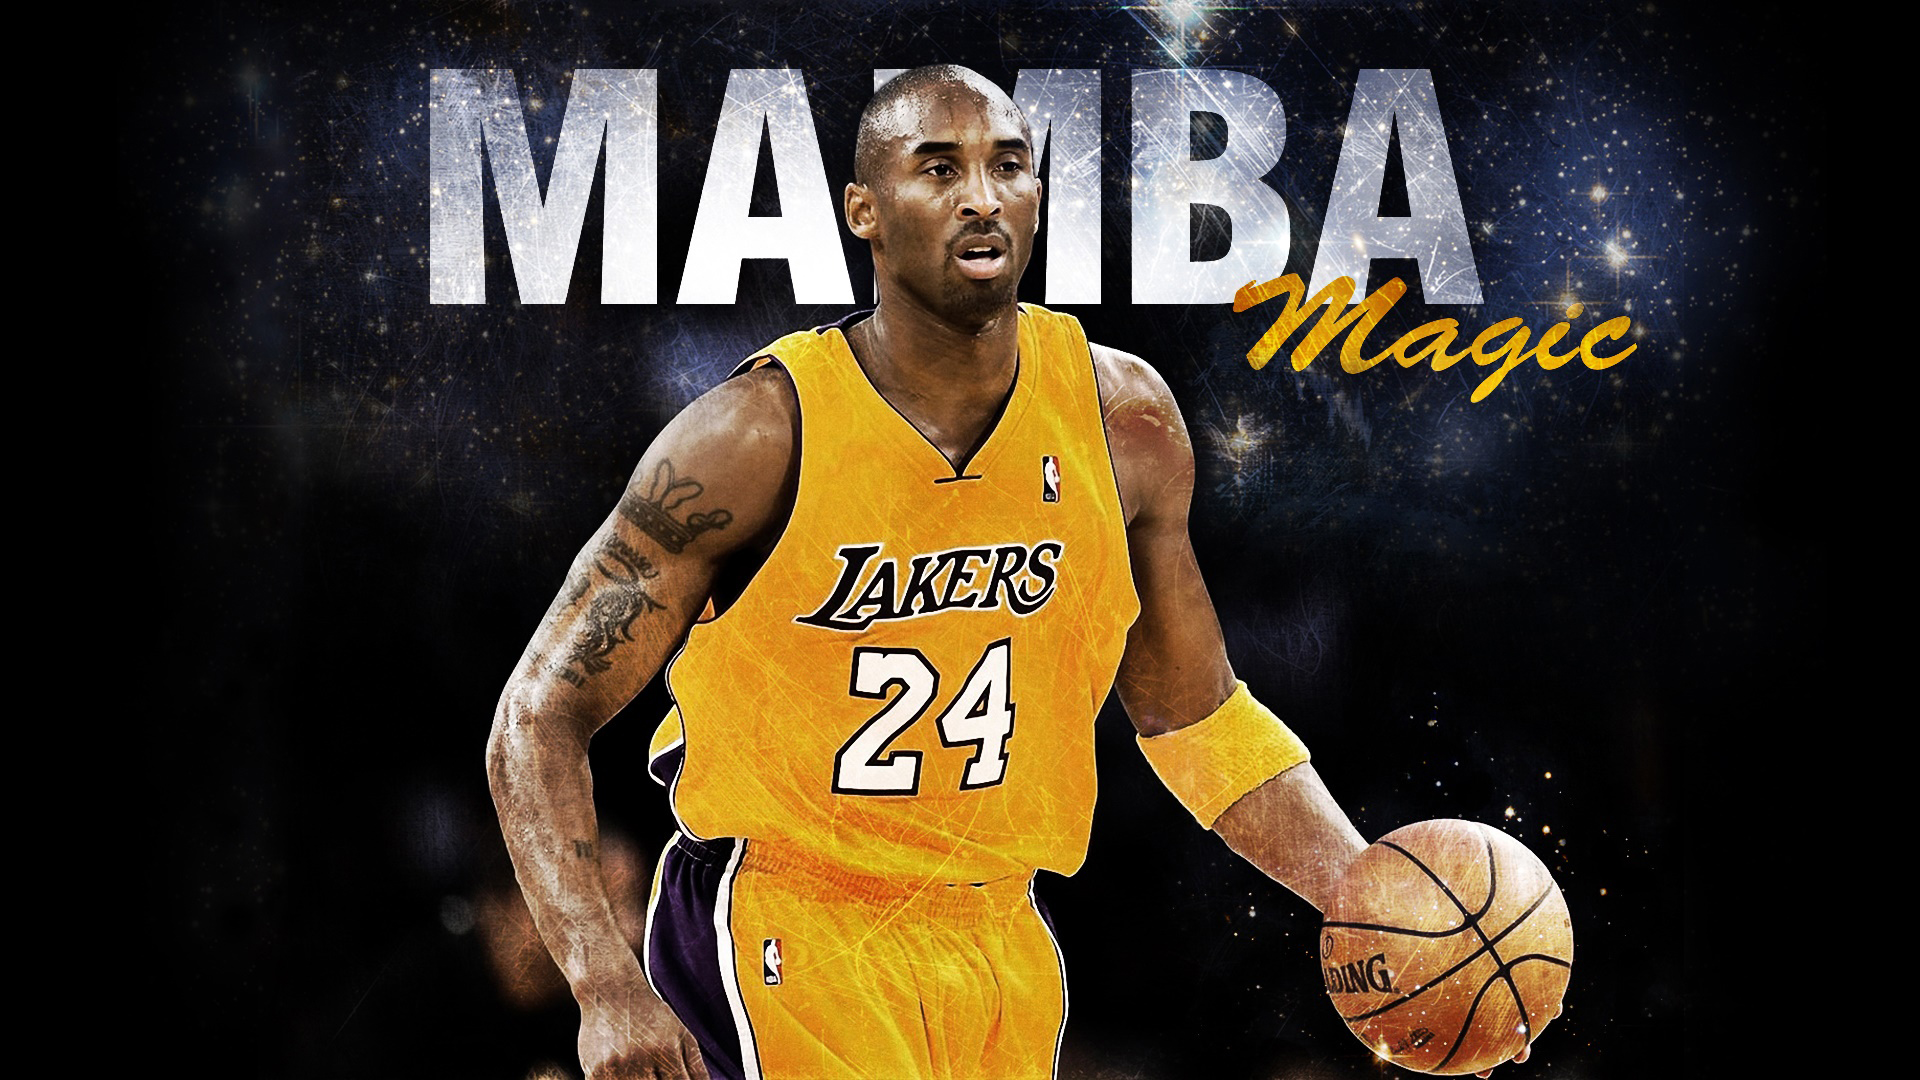 Download Kobe Bryant In Lakers Yellow Sports Background Hd Lakers